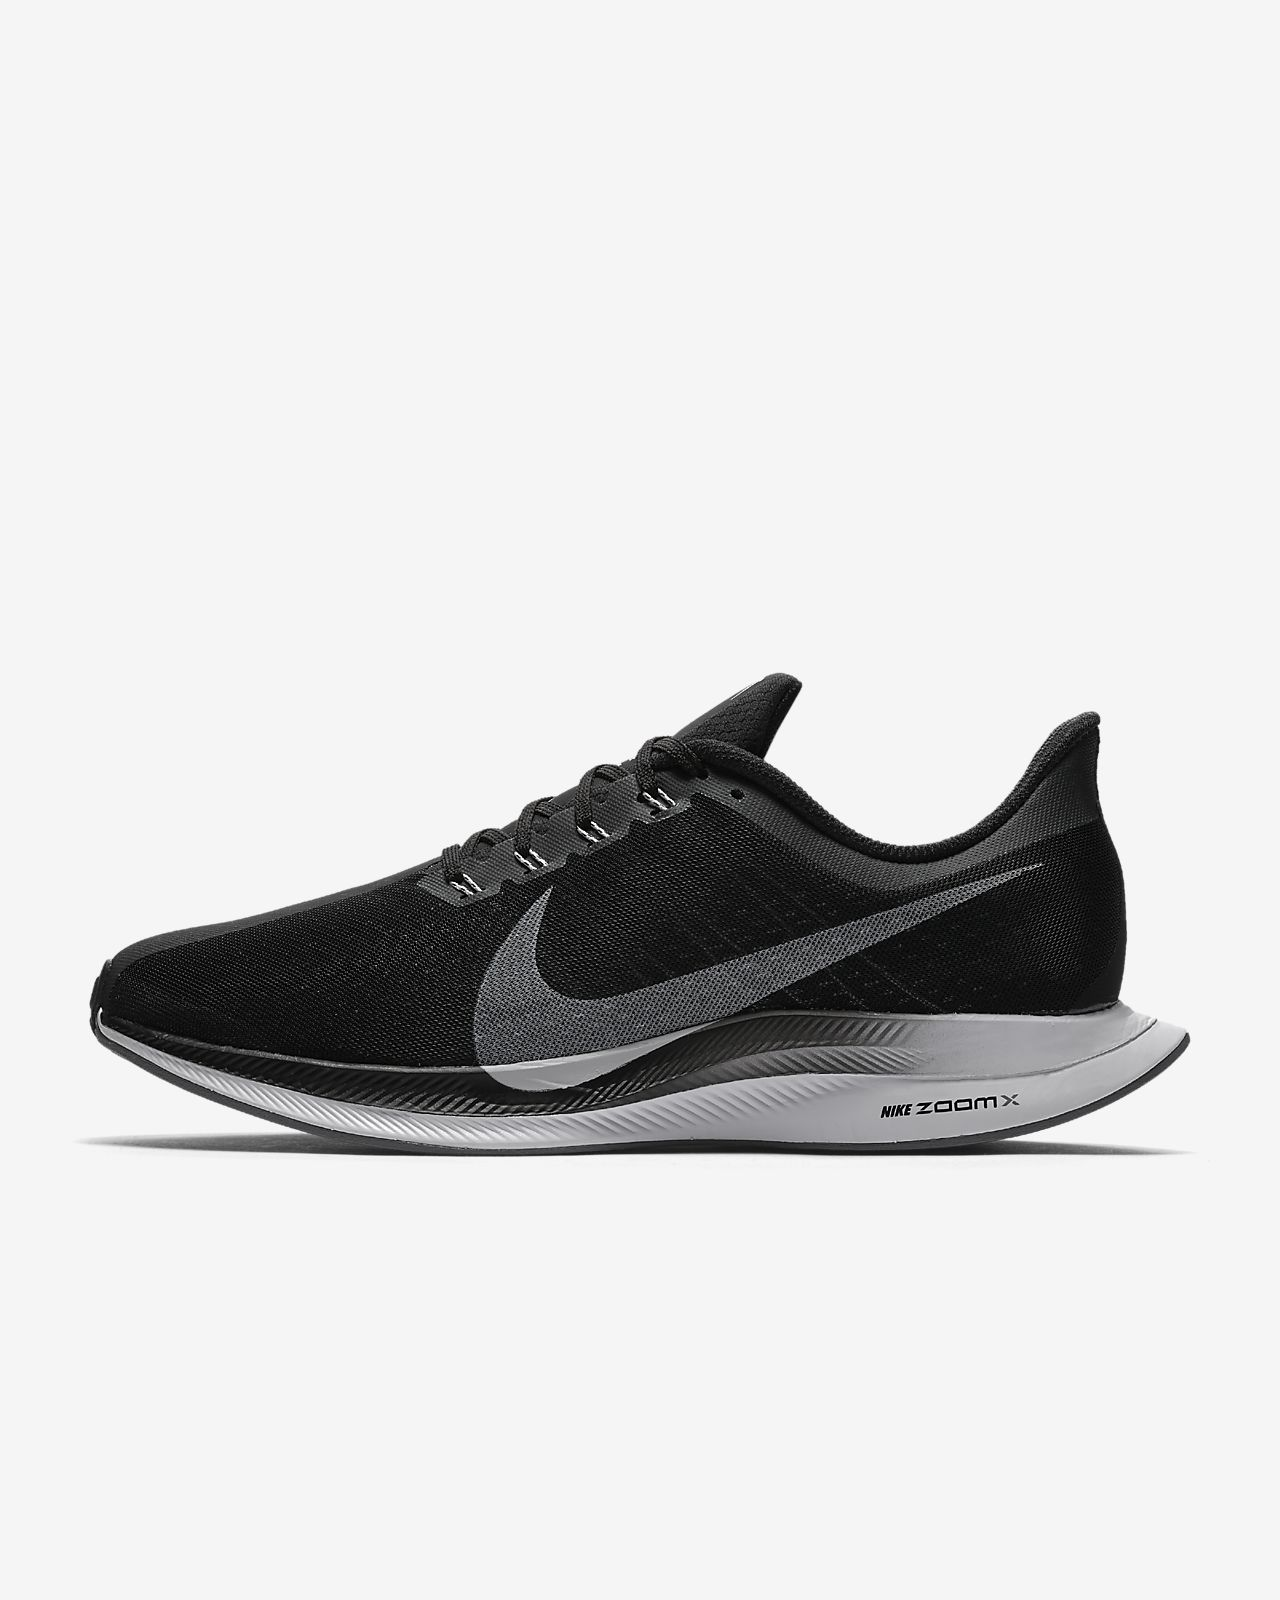 fea3fce2e ... new zealand chaussure de running nike zoom pegasus turbo pour homme  a4375 85478